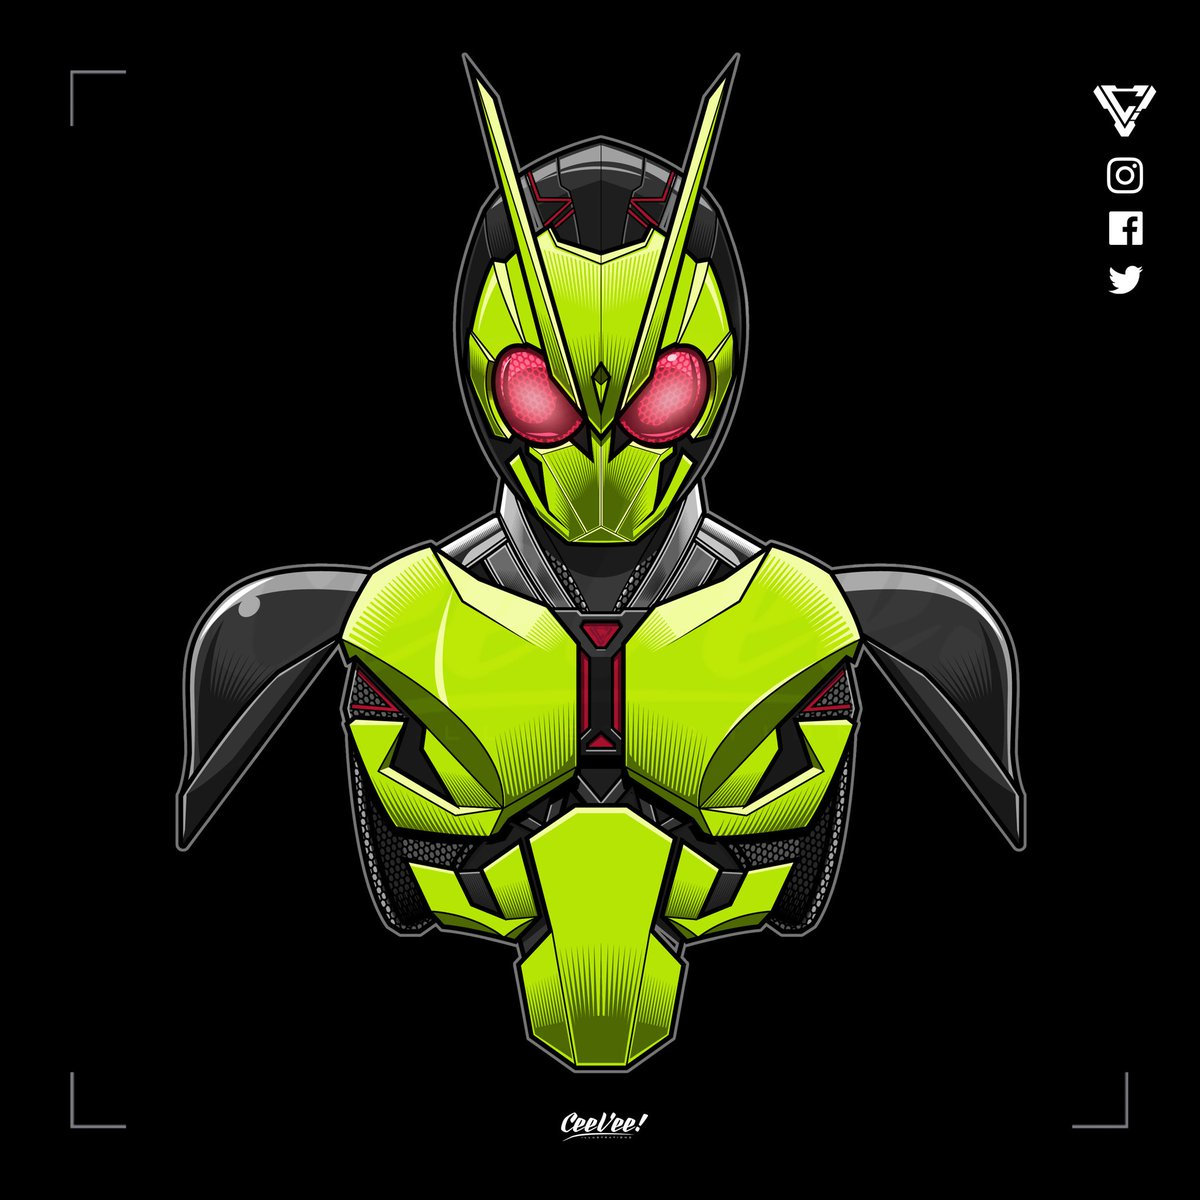 01 01 01 01 01 01 01 01 01 01 01 01 This is the kind of CEO I want to be  How do you guys like the series so far? That upcoming super form..... • #KamenRiderZeroOne #Tokusatsu #CVsketchaday2019<br>http://pic.twitter.com/PFzYyuyhue